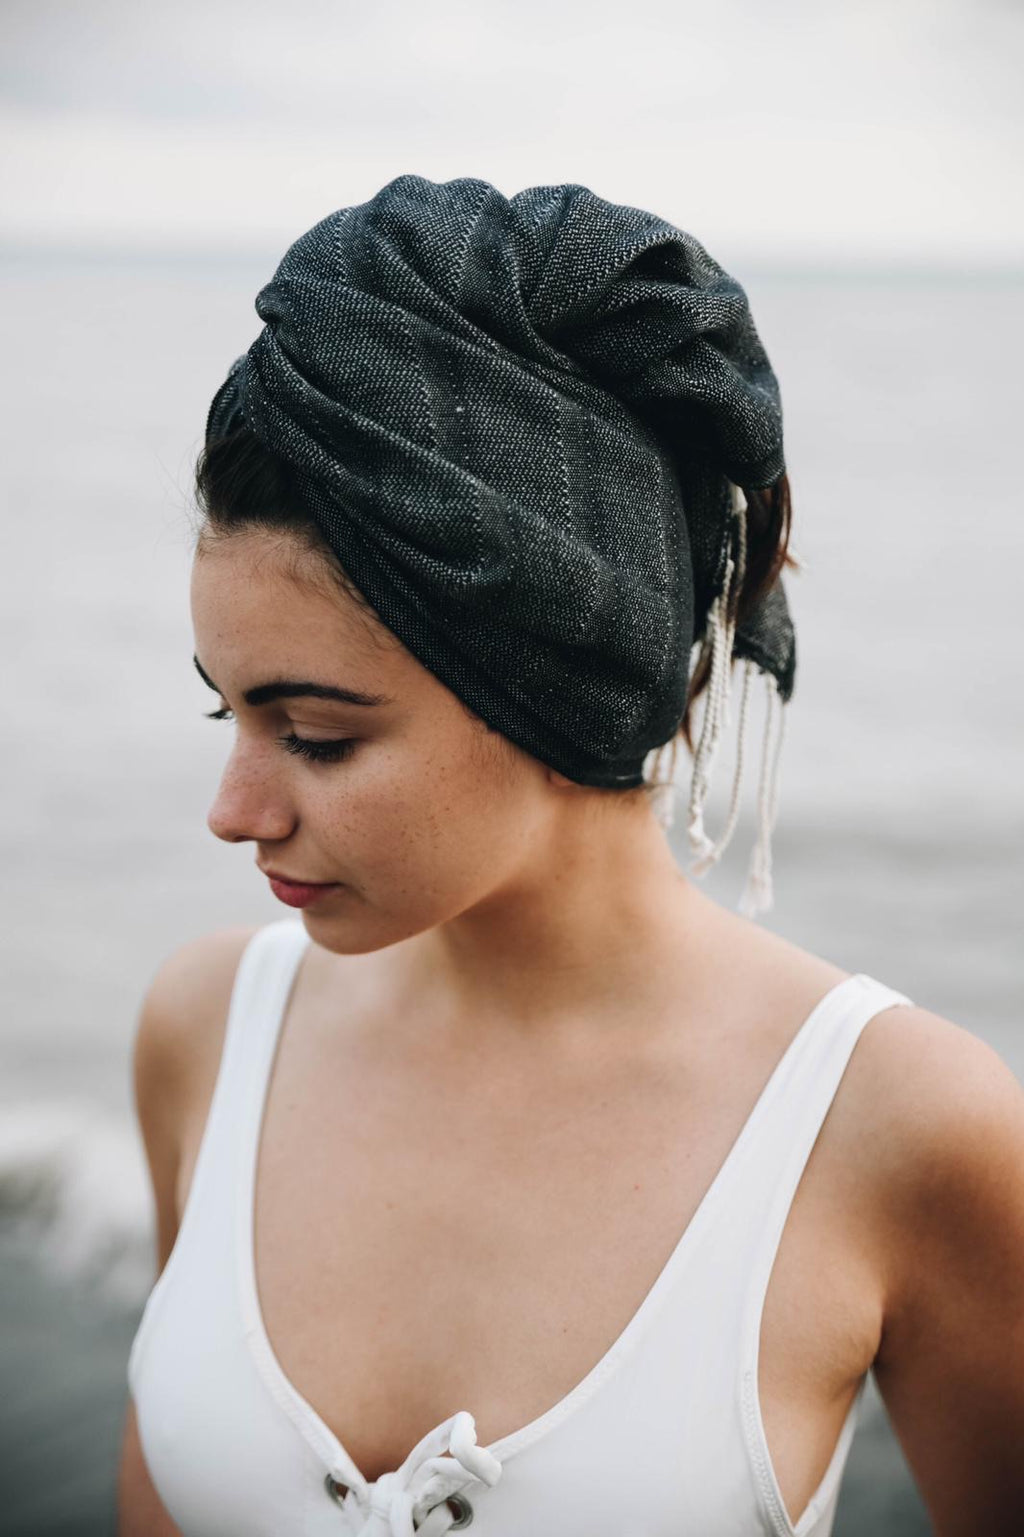 hair wrap koton kulture toronto turkish towel small size head scarf sarong black on black or light blue